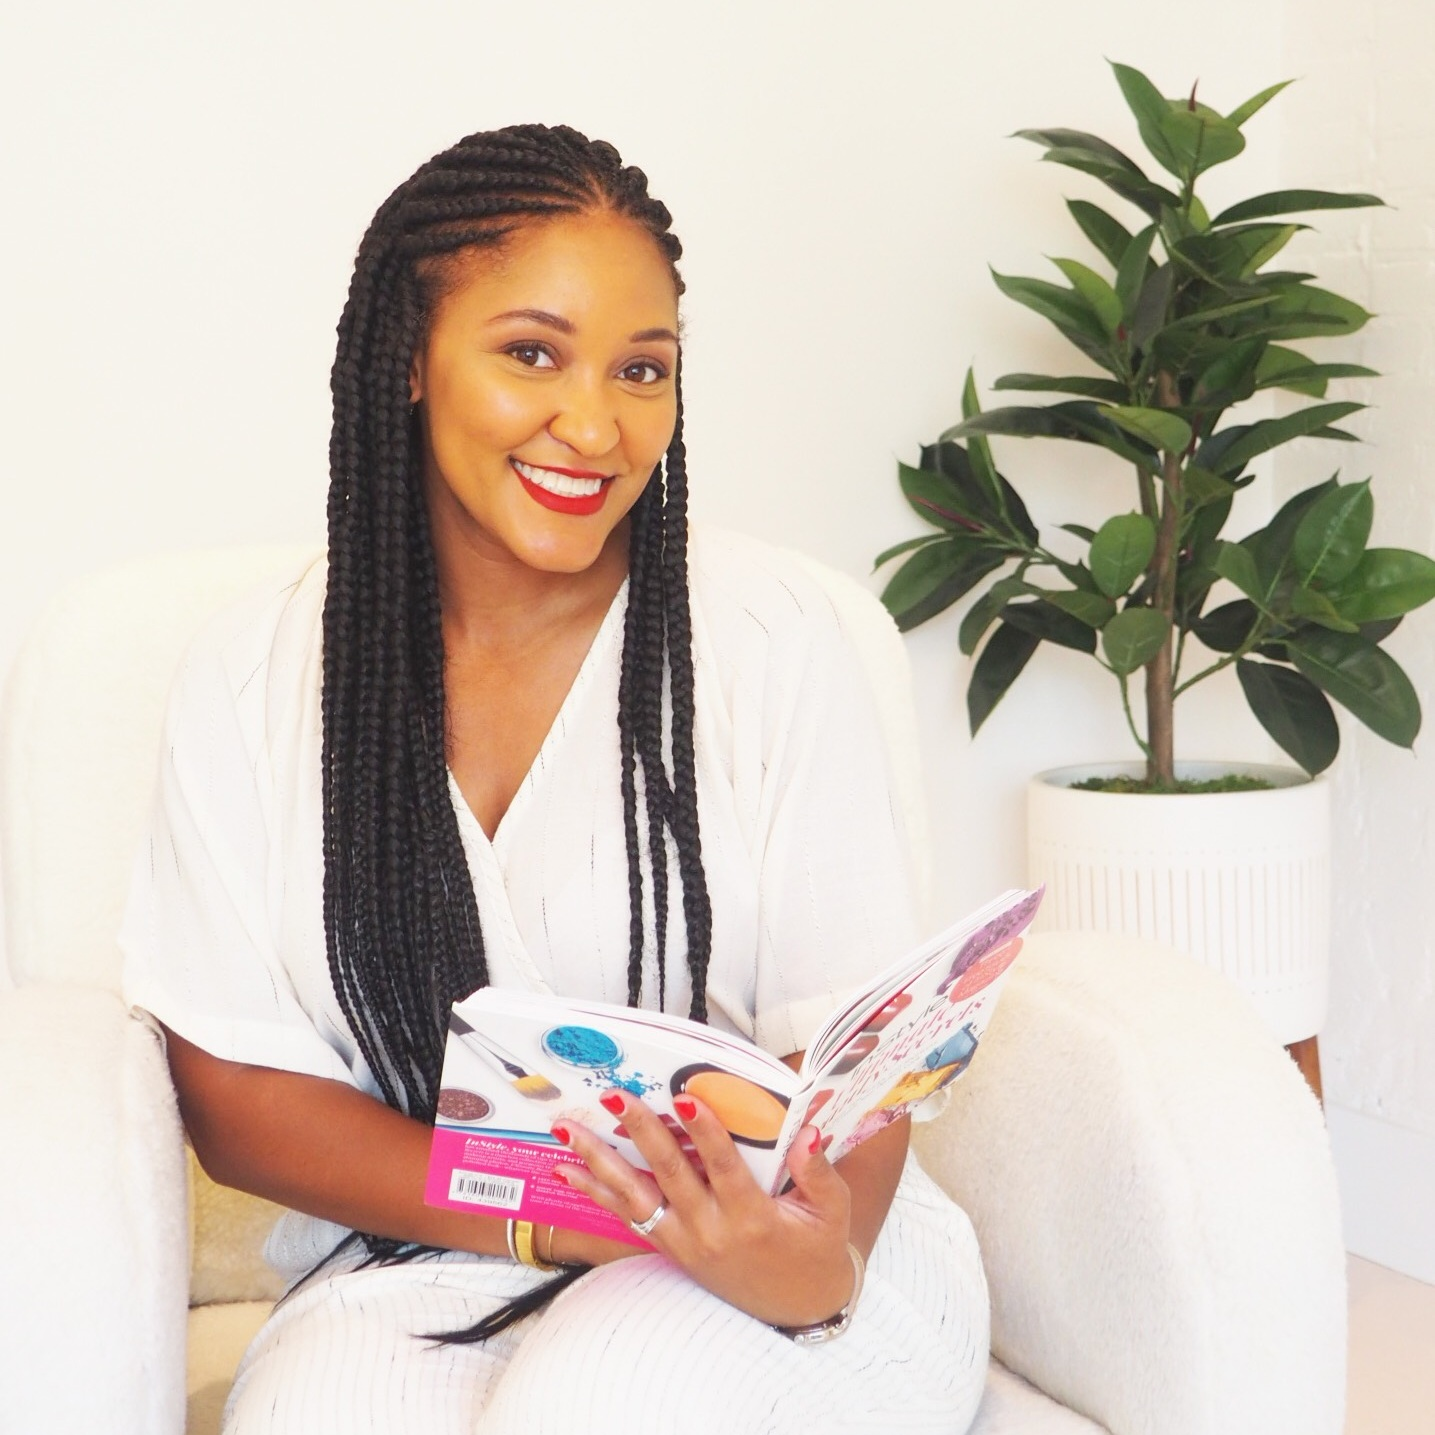 The Wellness Apothecary - (@thewellnessapothecary)This company was founded in Washington D.C. in March of 2018 and launched in March of 2019. The first time they sold with us was in Spring 2019 and immediately their products caught our eye. Founded by Taiyiana Reed, a clinical pharmacist and wellness expert, the brand focuses on curating the most affordable, clean, and healthy beauty products.Products are carefully chosen - they must be free of carcinogens, sulfates, parabens, and must also be vegan, cruelty-free, and eco-friendly. Perfect products for our quests for self-care and conscious consumer decisions!